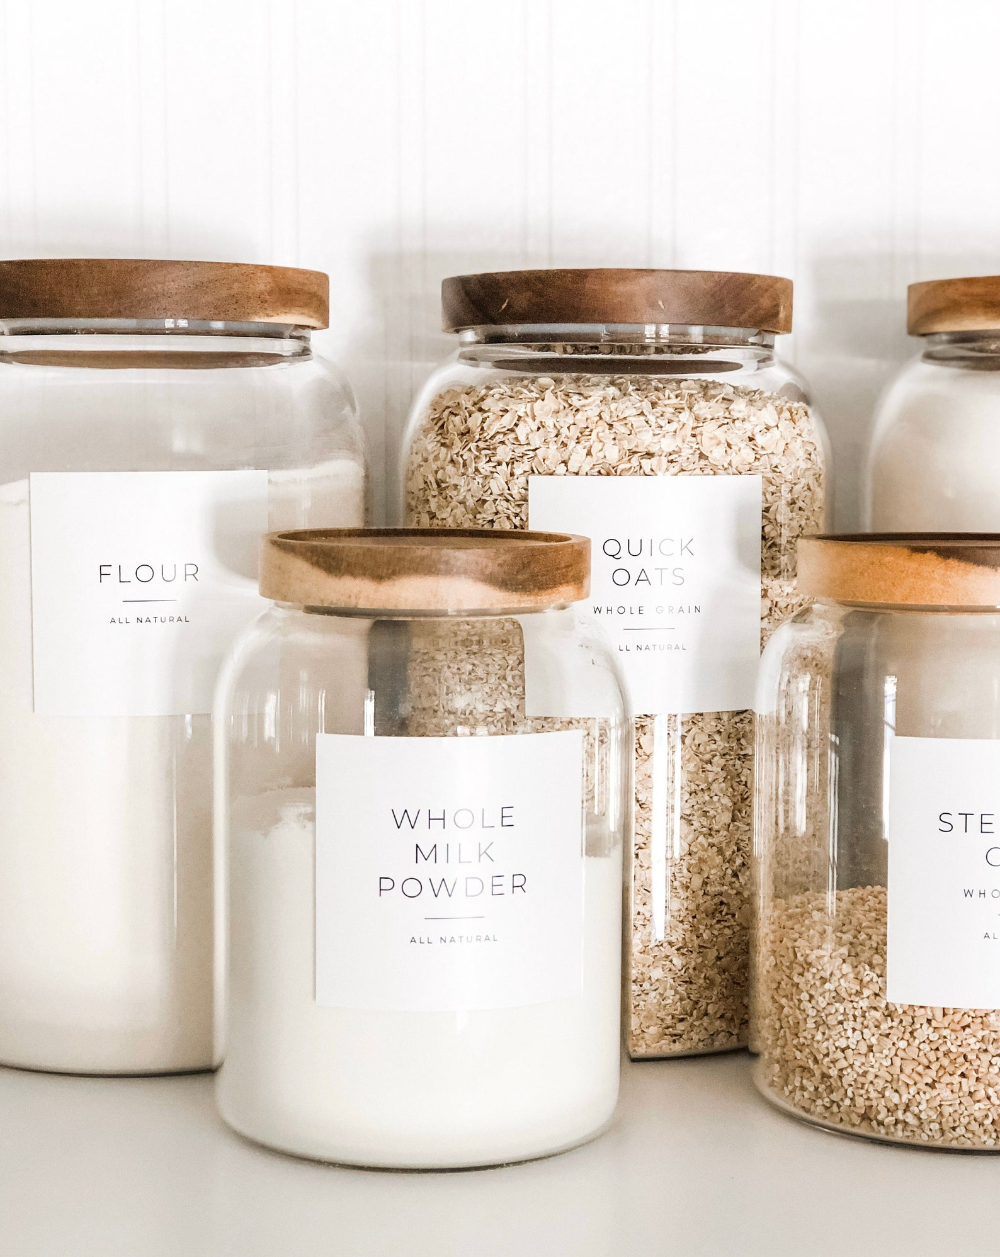 Minimalist Pantry Labels  • Personalization Available • Durable, Water & Oil Resistant • Square or Round, fits Mason Jars #kitchenpantrystorage